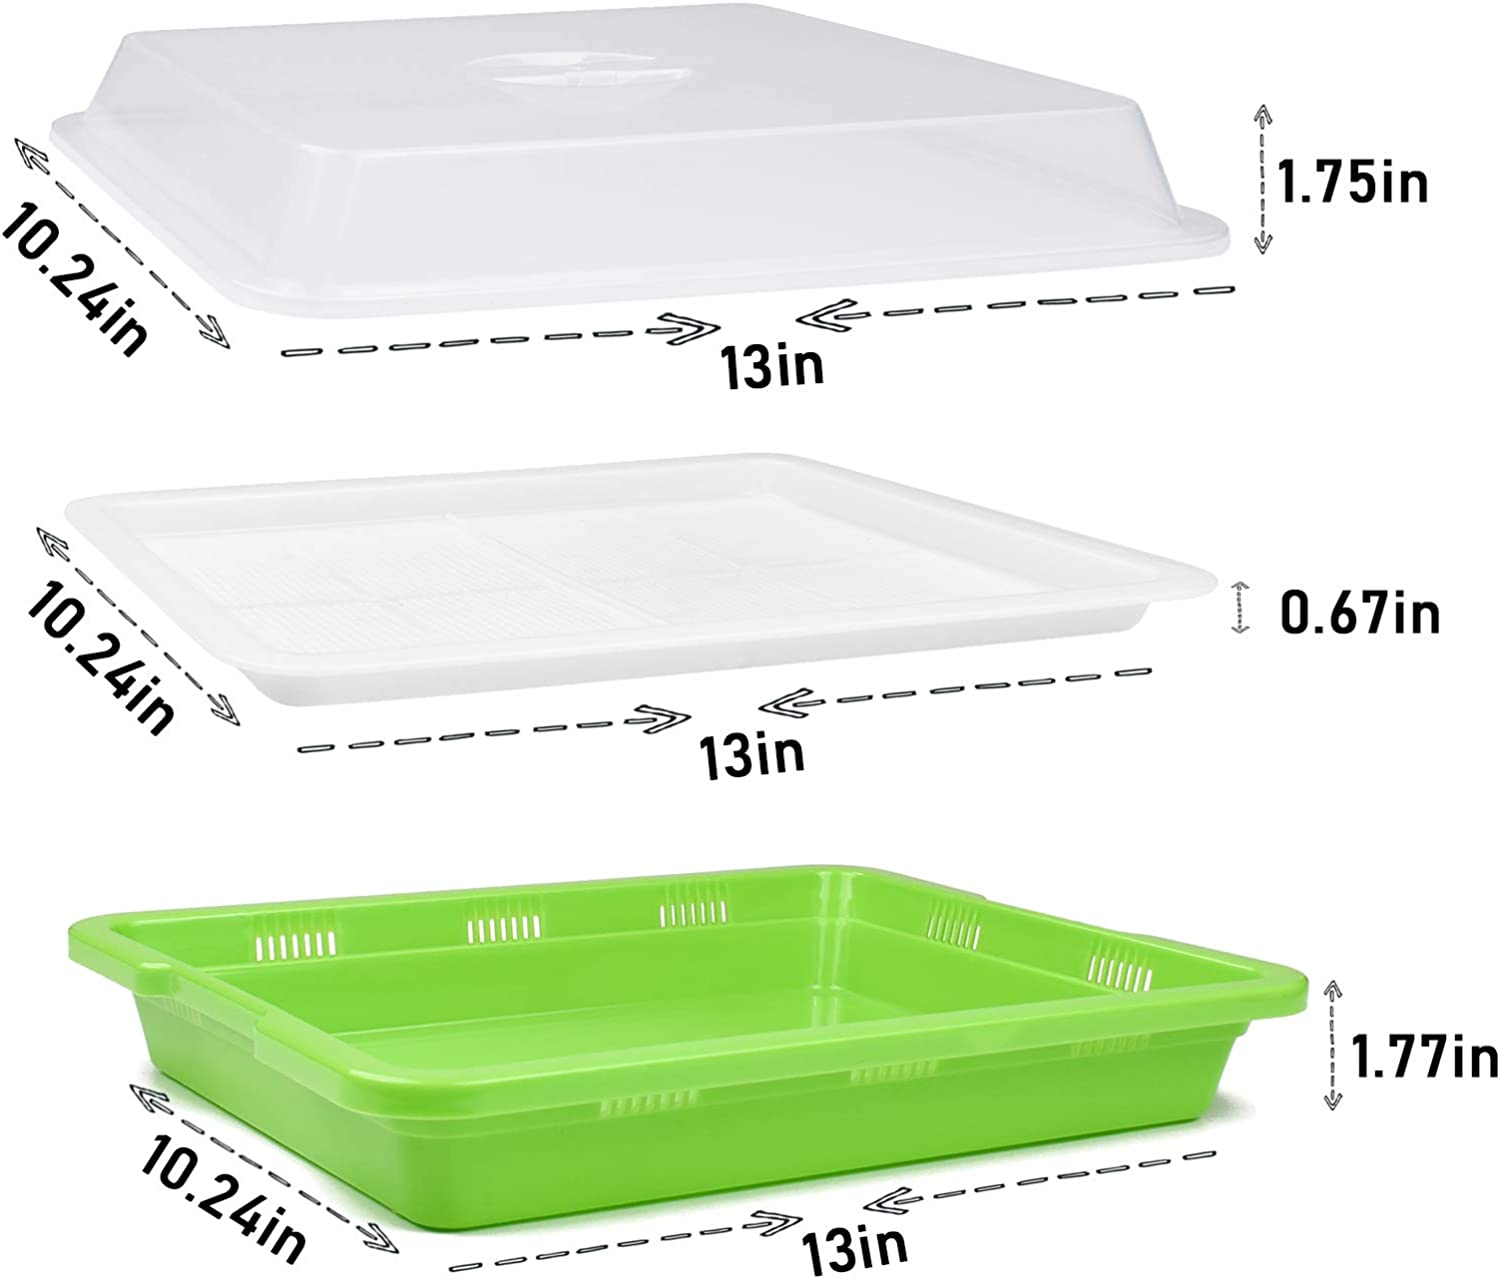 KORAM Seed Sprouter Tray BPA Free Nursery Tray for Seedlings Wheat Grass Grower Planter Hydroponics 2 Size Holes Grid Seed Germination Tray Sets with Germinating Paper for Garden Home Office 13 x14